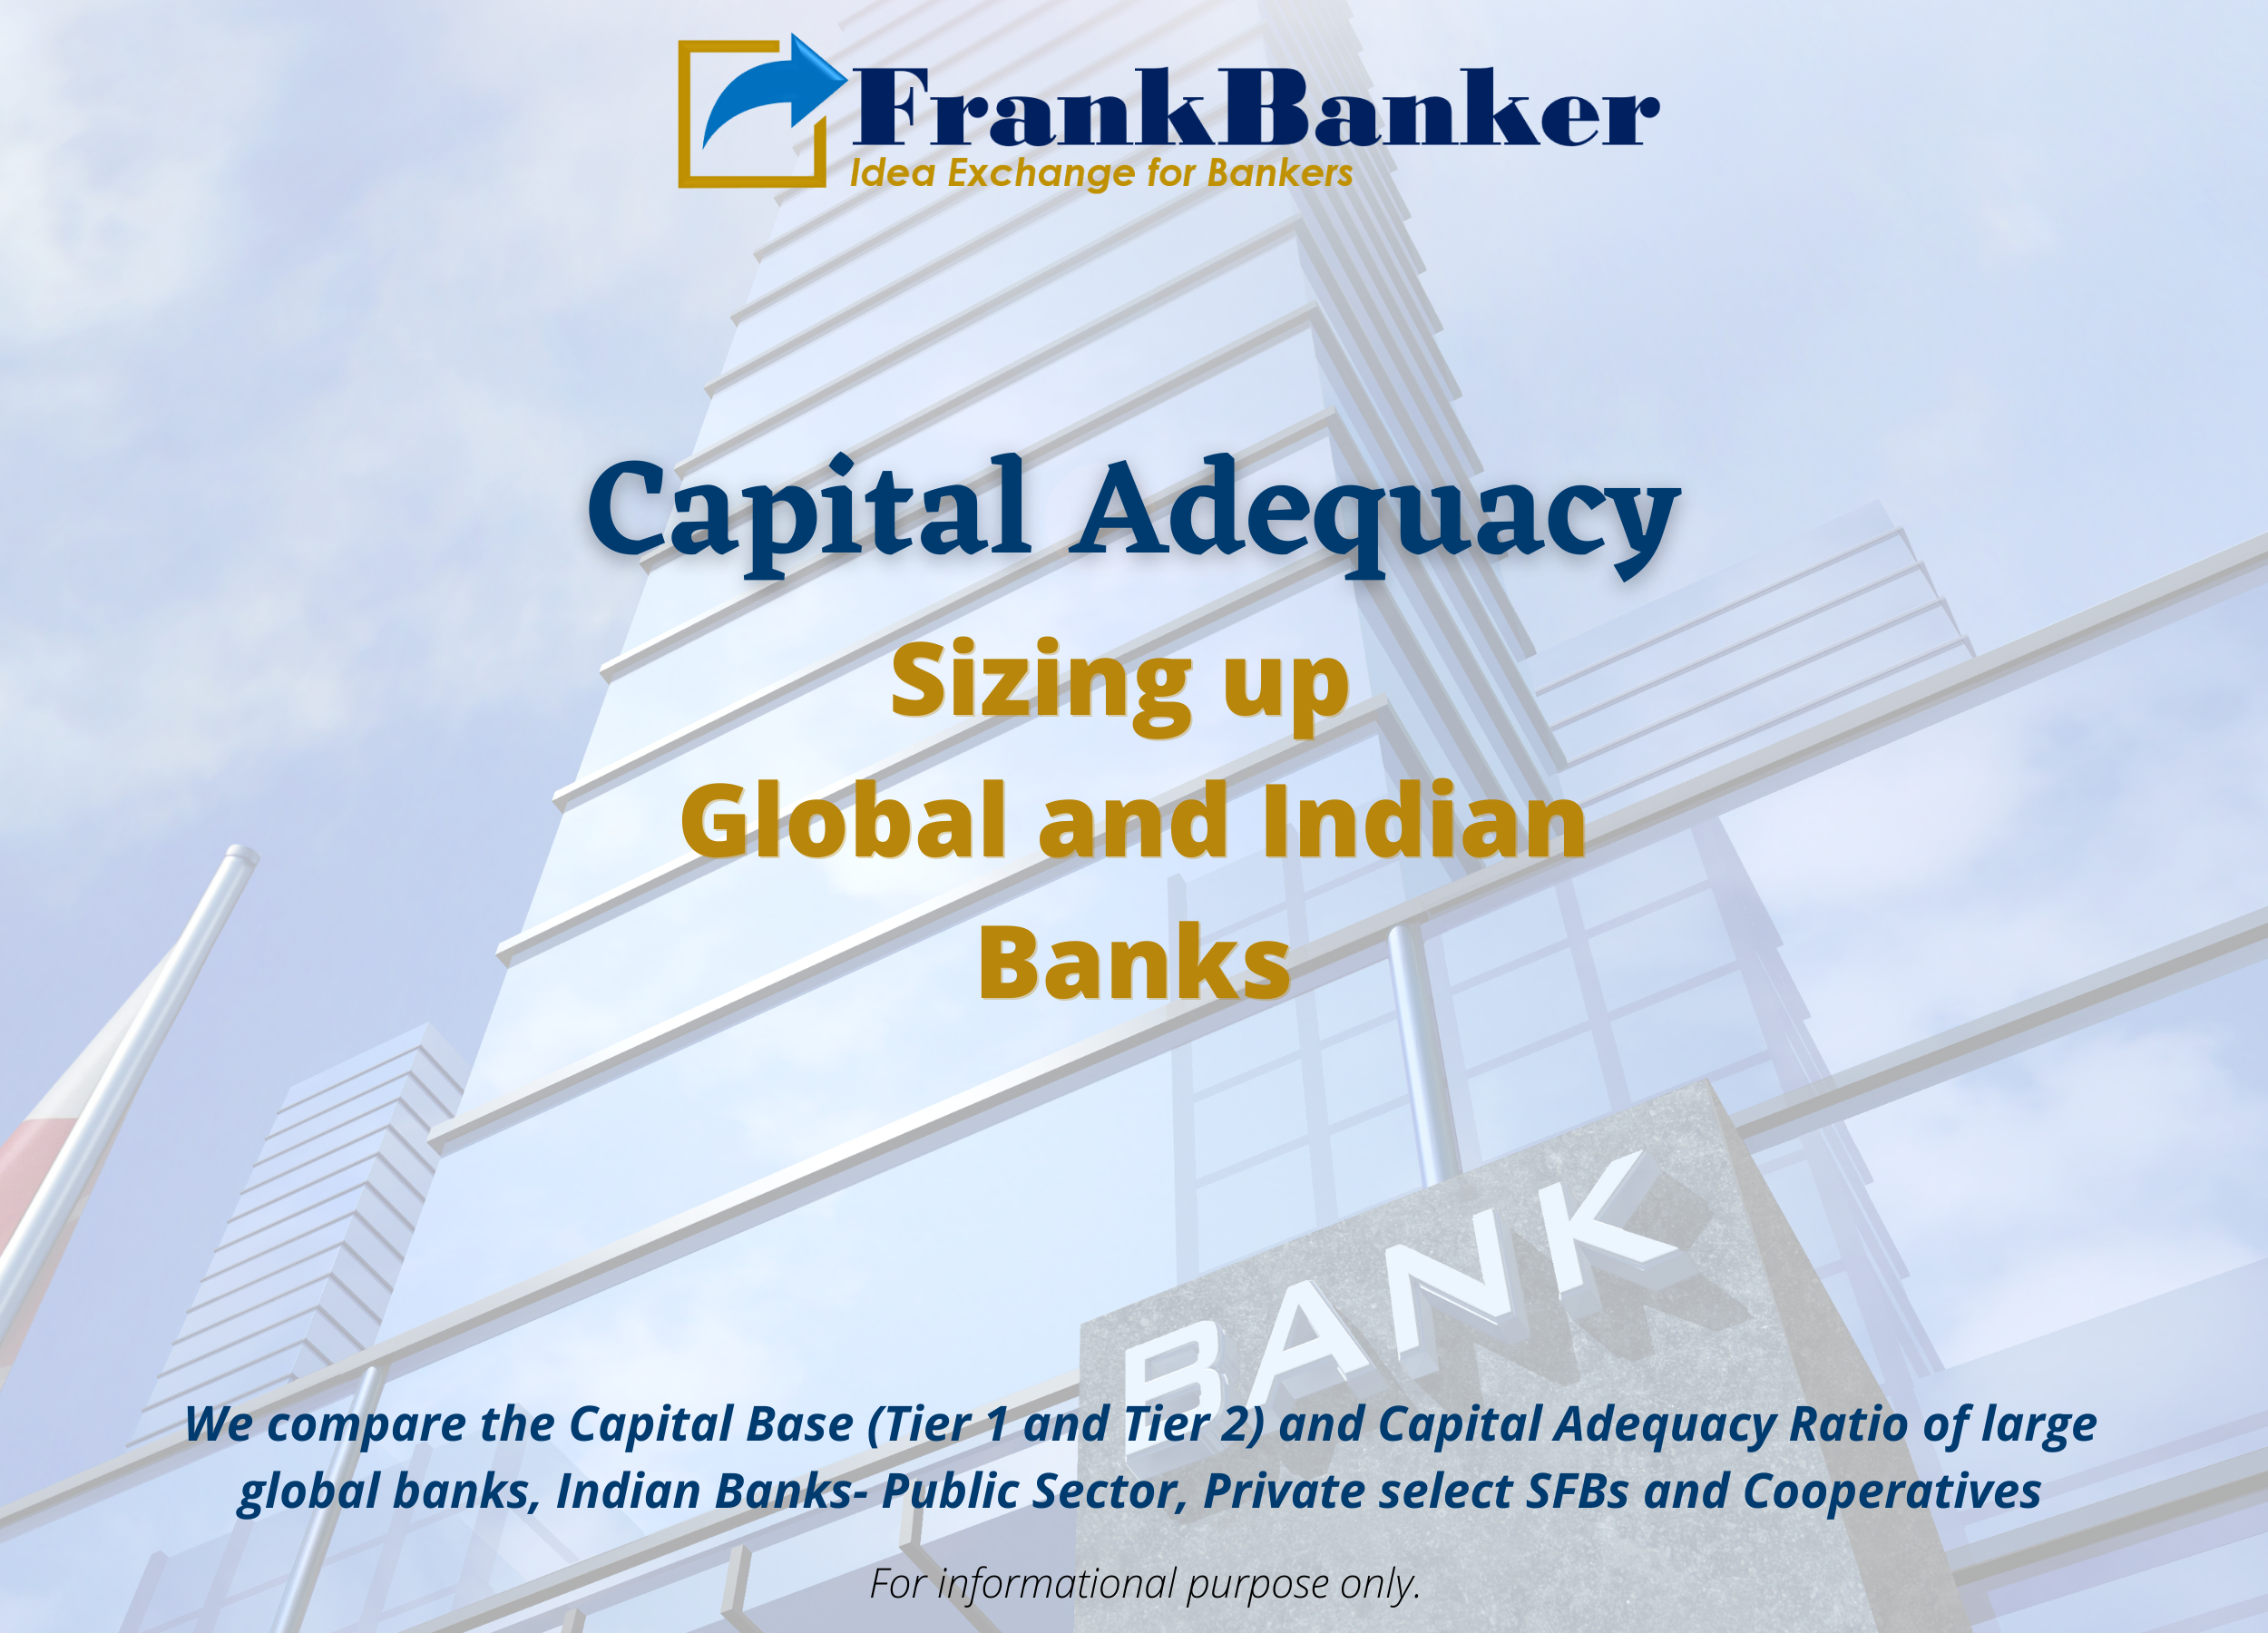 CAPITAL ADEQUACY: Sizing up Indian and Global Banks